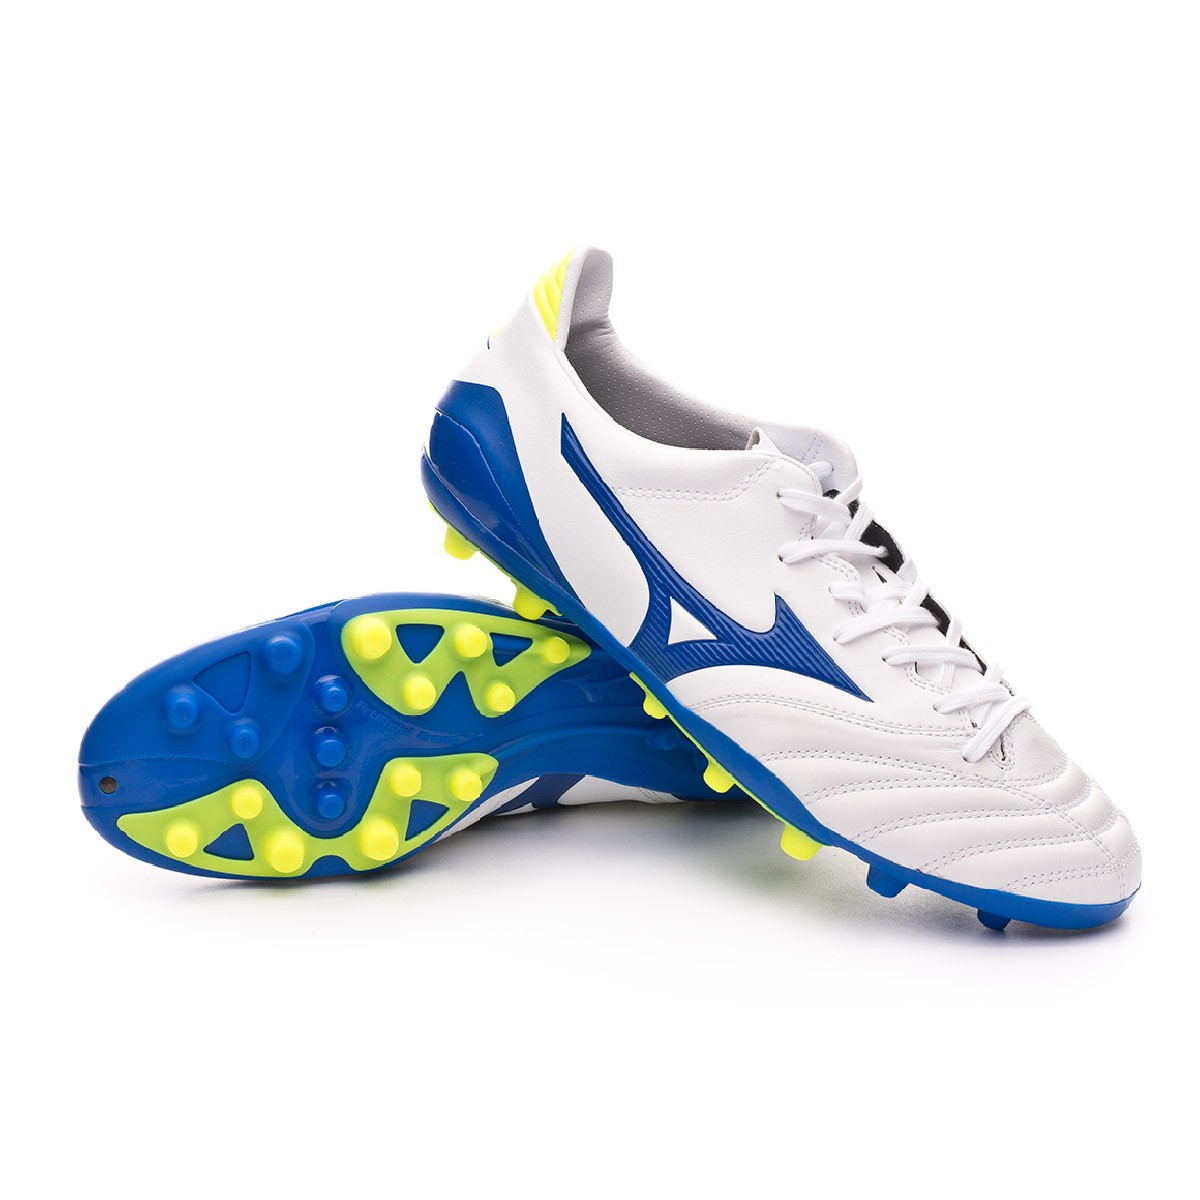 separation shoes 5bf6c f0225 Bota Morelia Neo KL II AG White-Wave cup blue-Safety yellow